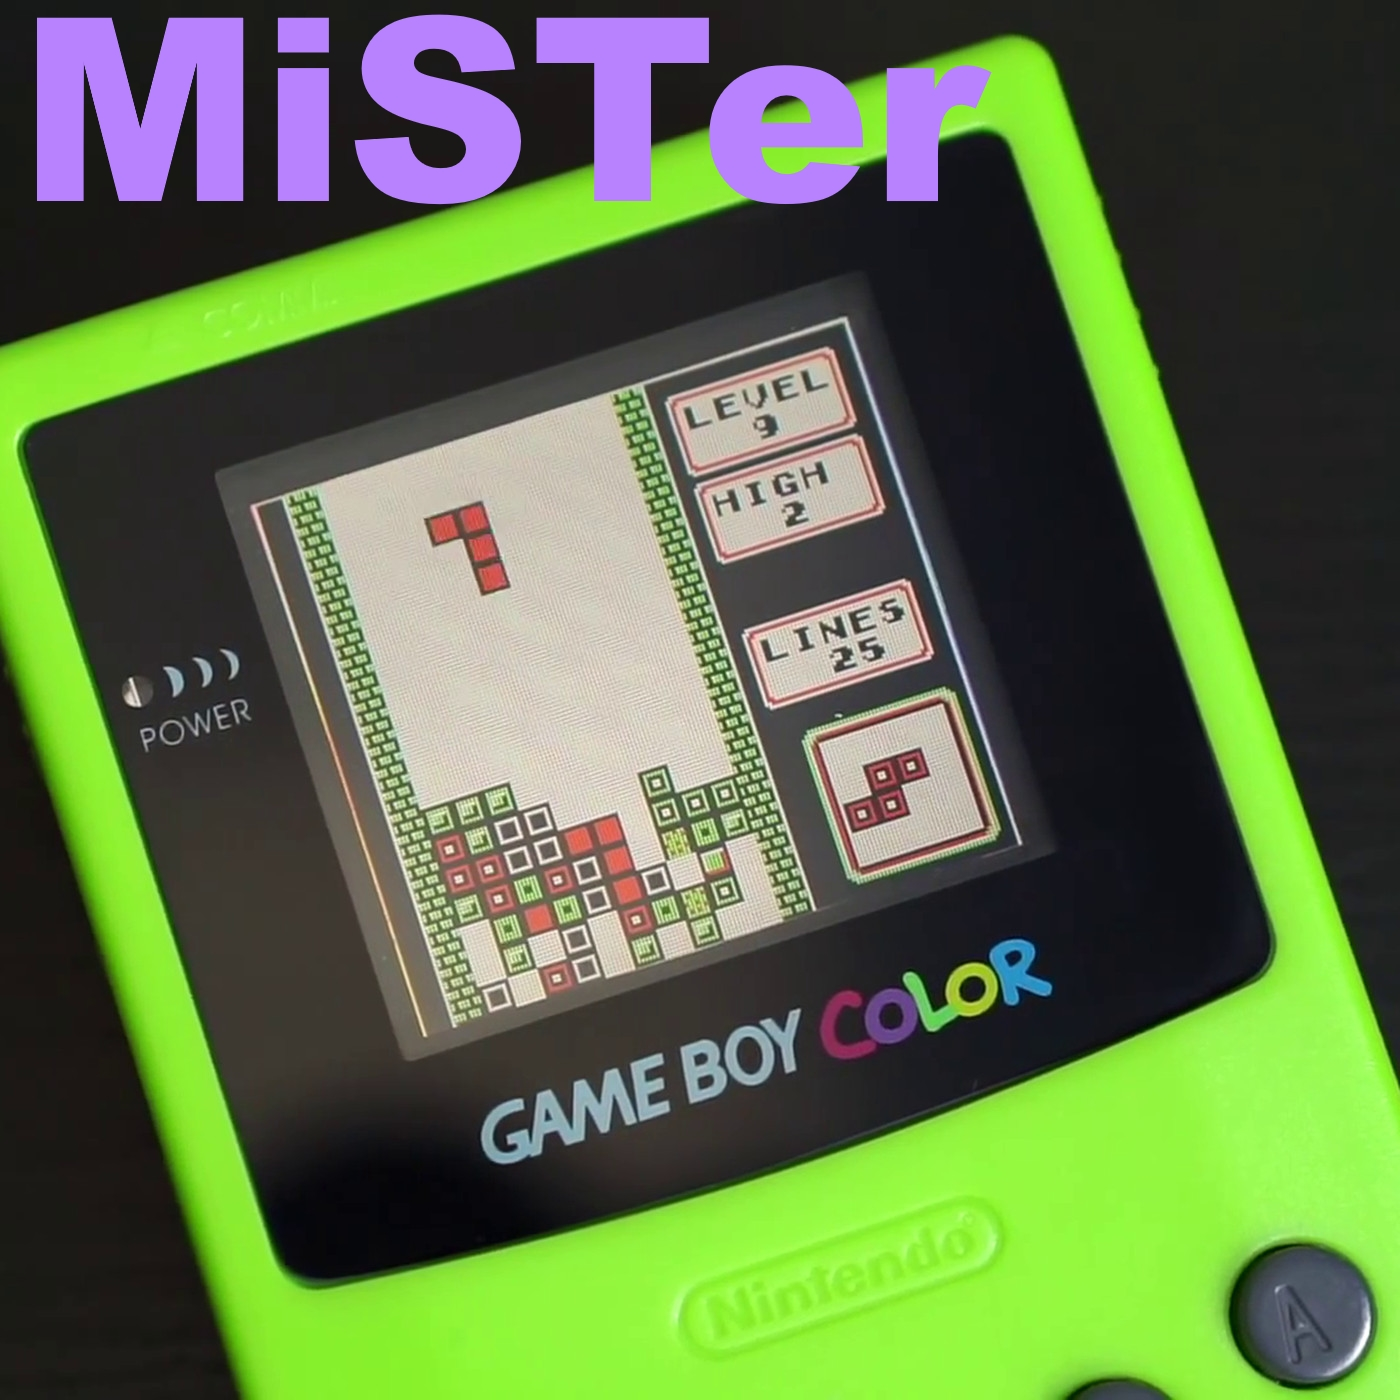 MiSTer gets Game Boy Color Support